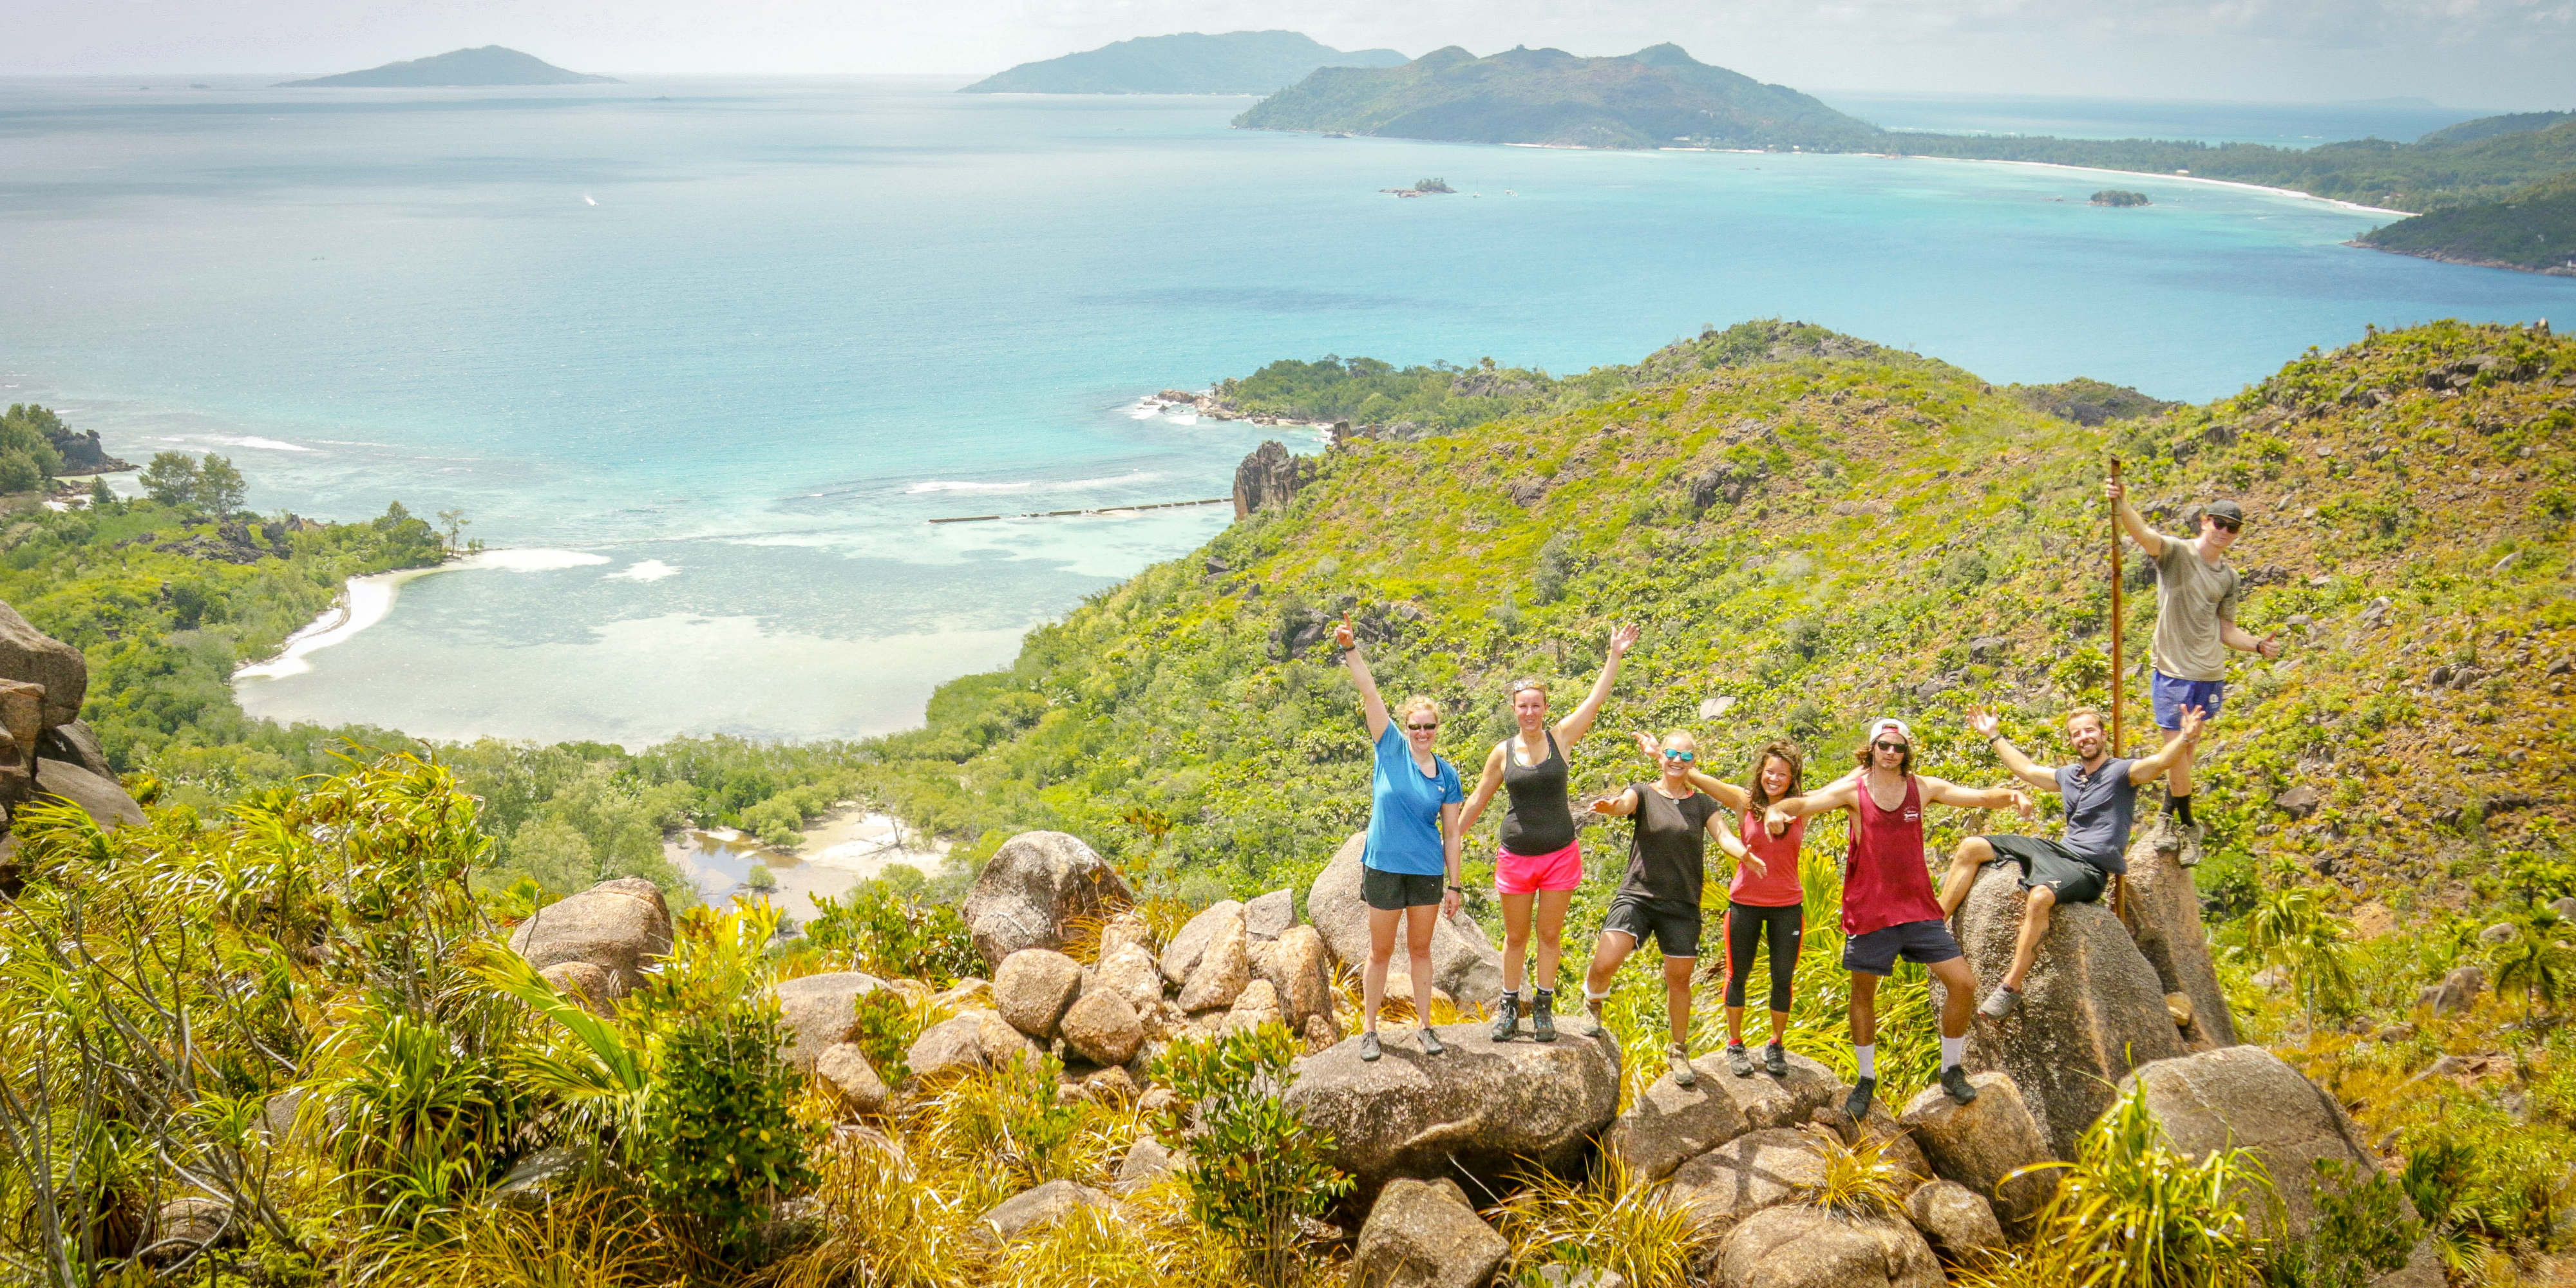 GVI participants enjoy the view from the summit of Curieuse Island while volunteering in Seychelles.